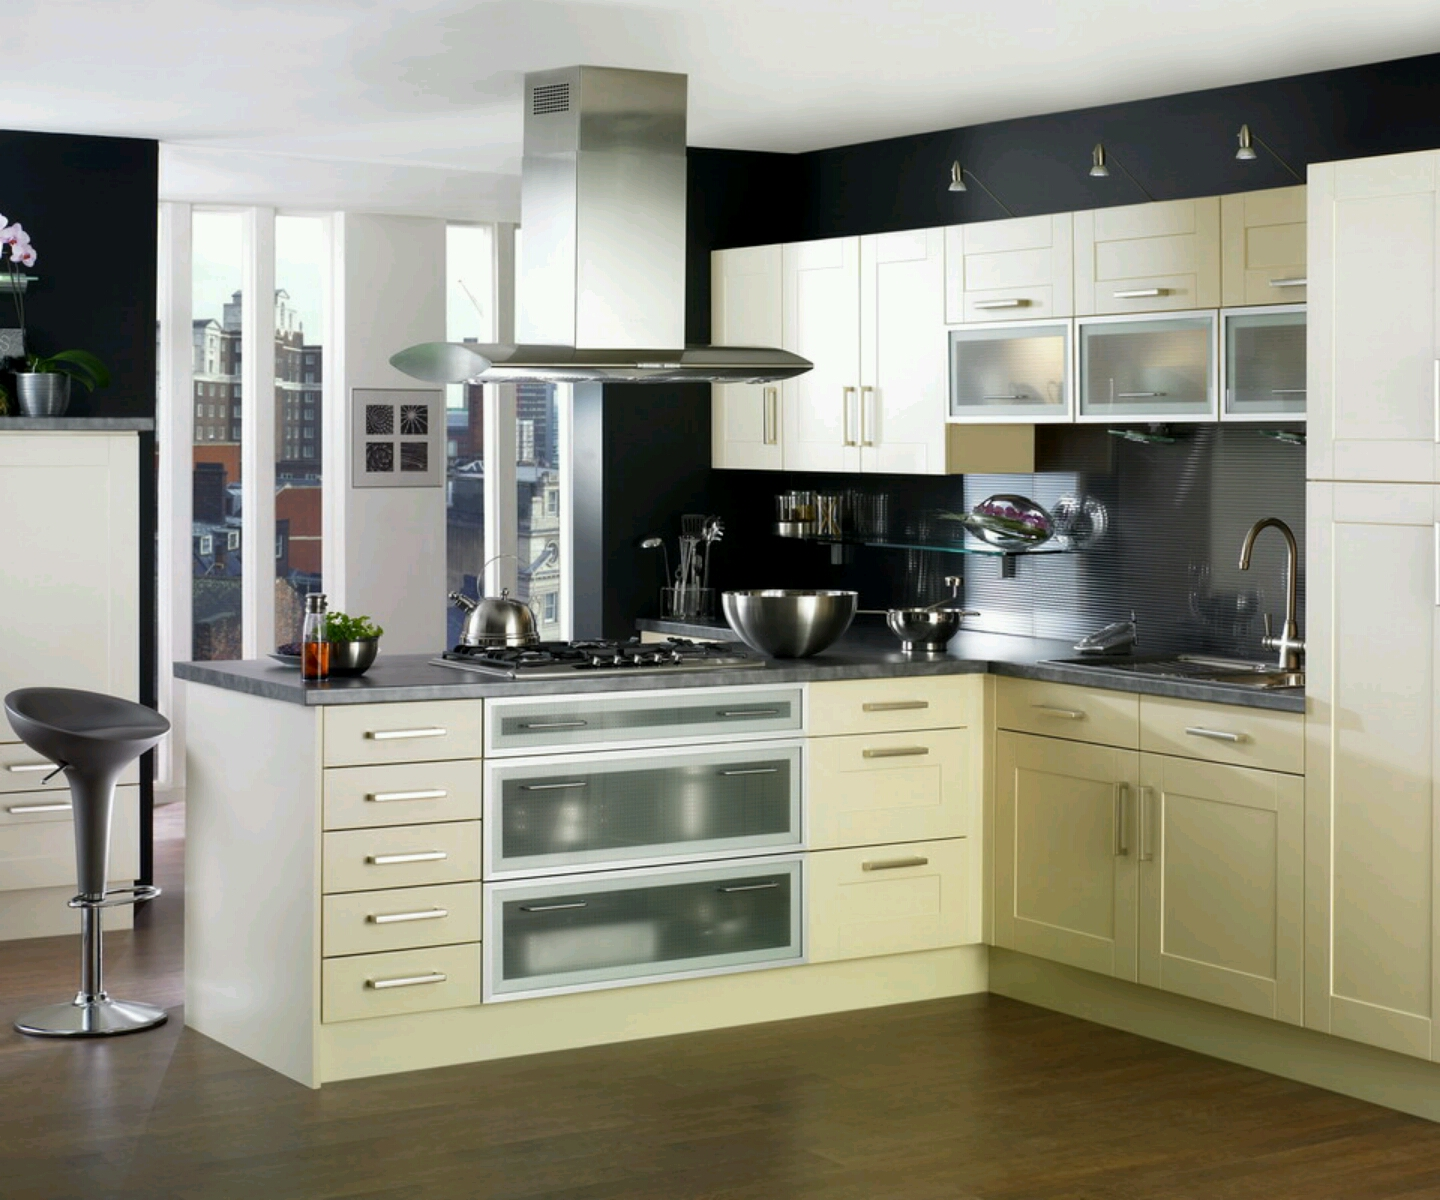 New home designs latest kitchen cabinets designs modern for Kitchen cupboard ideas